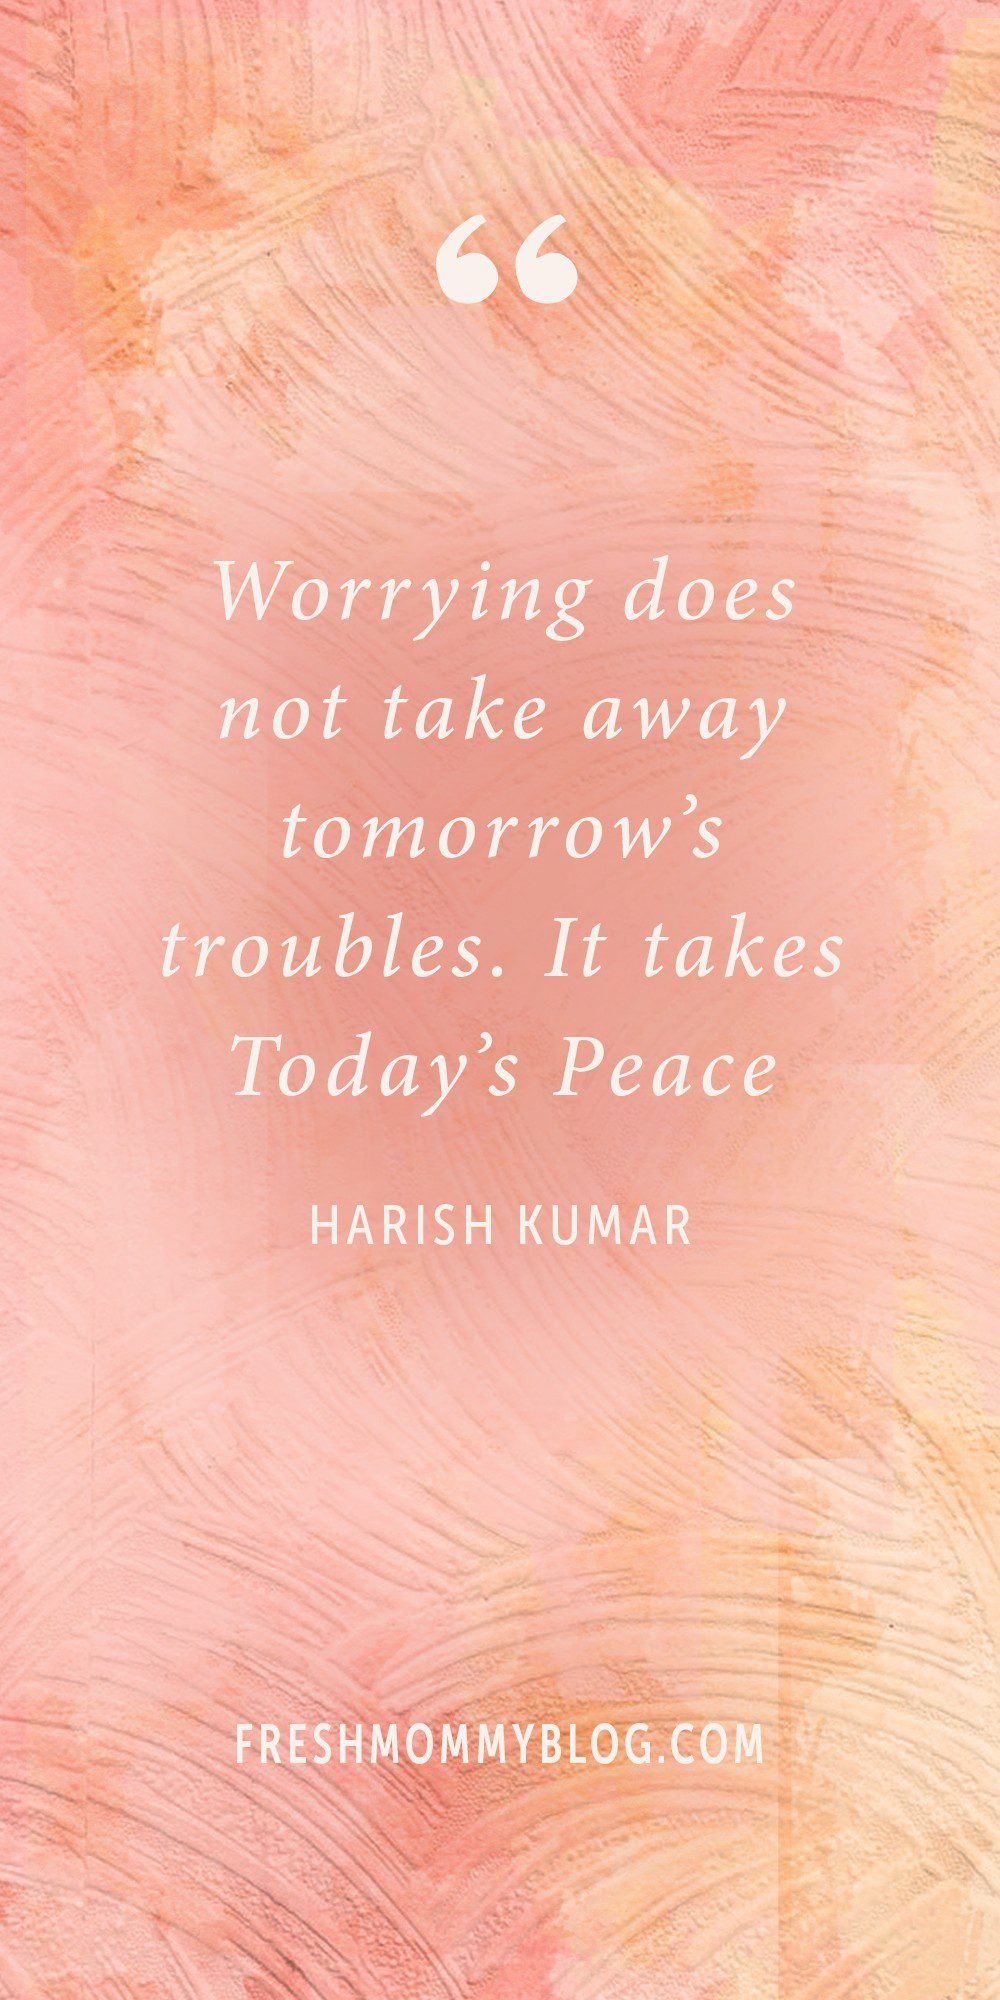 """Worrying does not take away tomorrow's troubles. It takes Today's Peace."" Harish Kumar - Inspirational quotes for living your best life! 